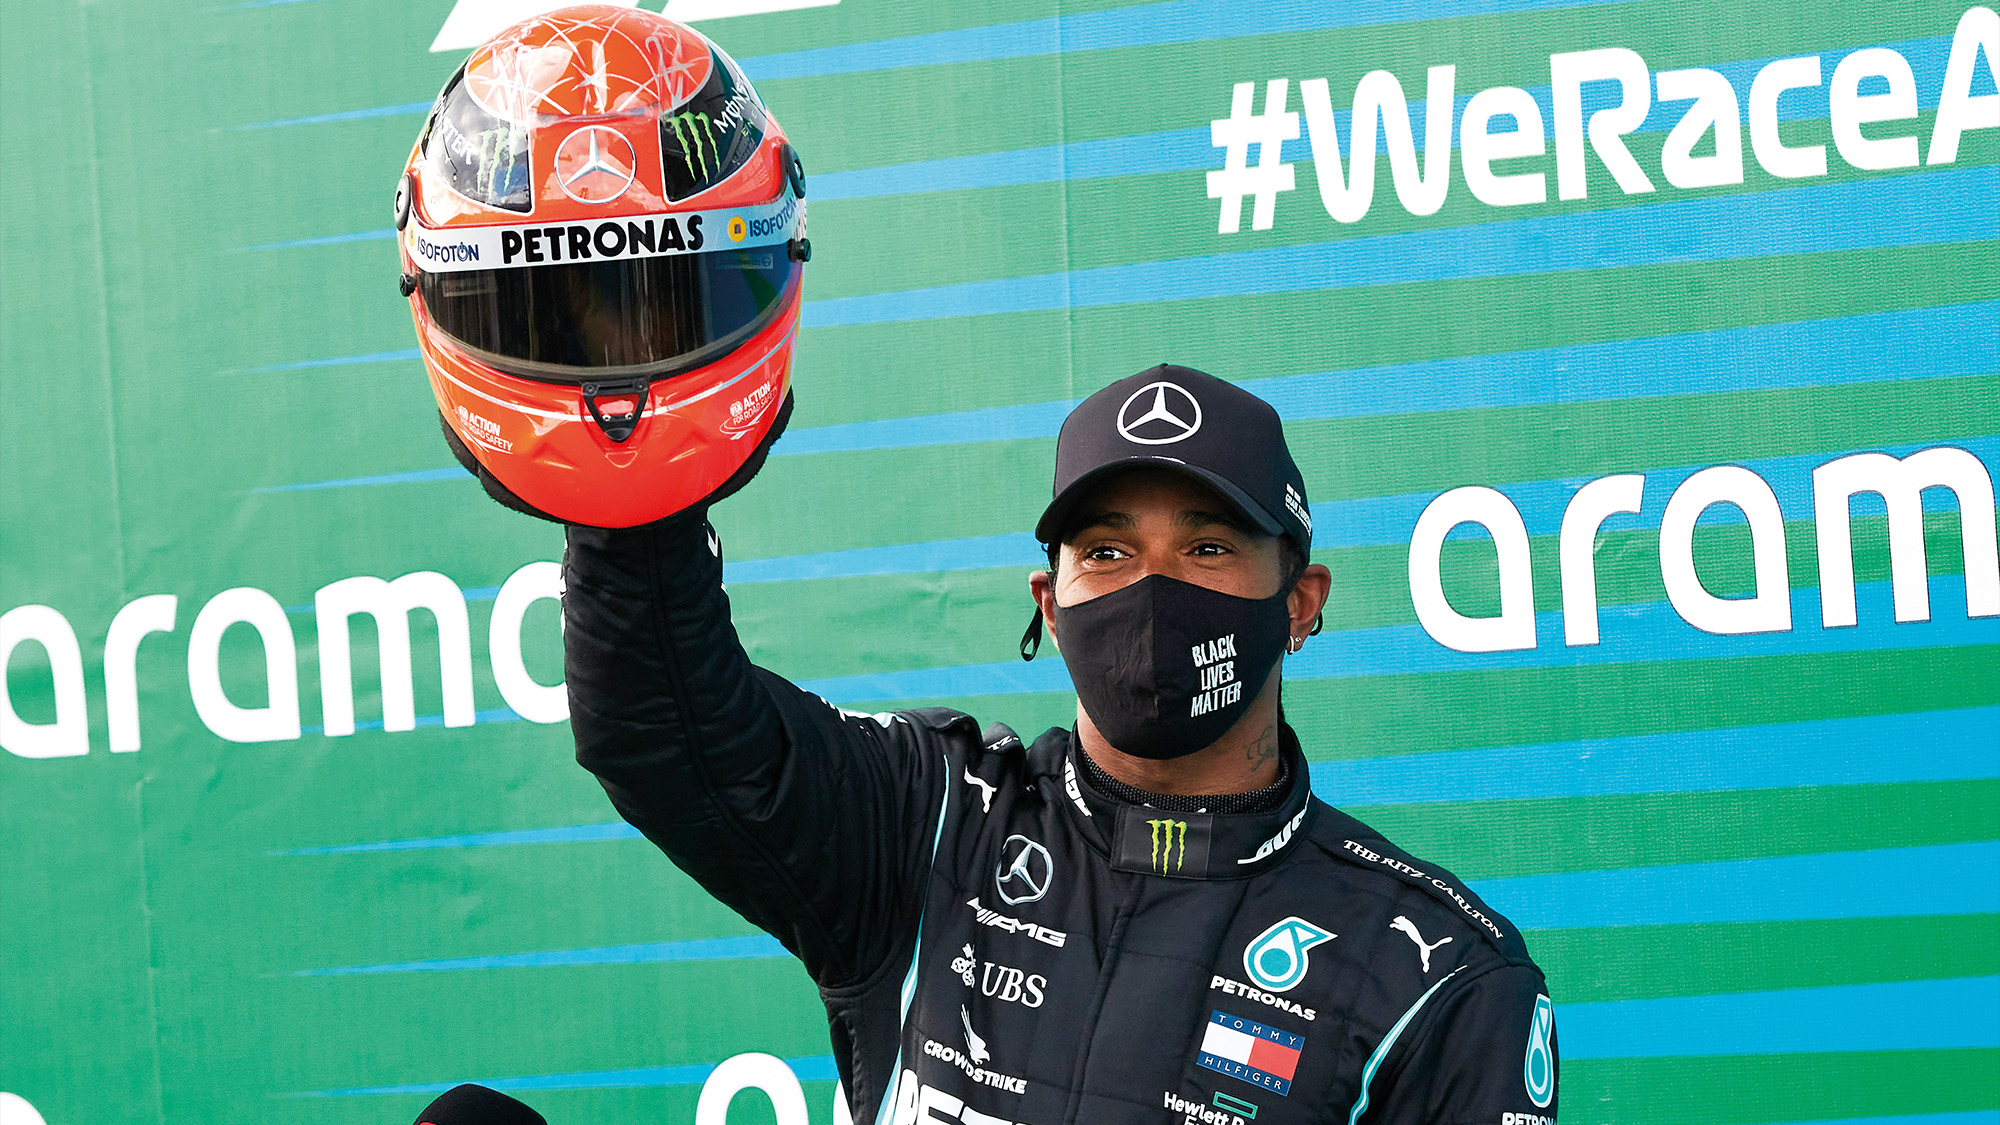 Lewis Hamilton holds up Michael Schumacher's helmet that he was given after equalling the record for the number of F1 wins atthe 2020 Eifel Grand prix